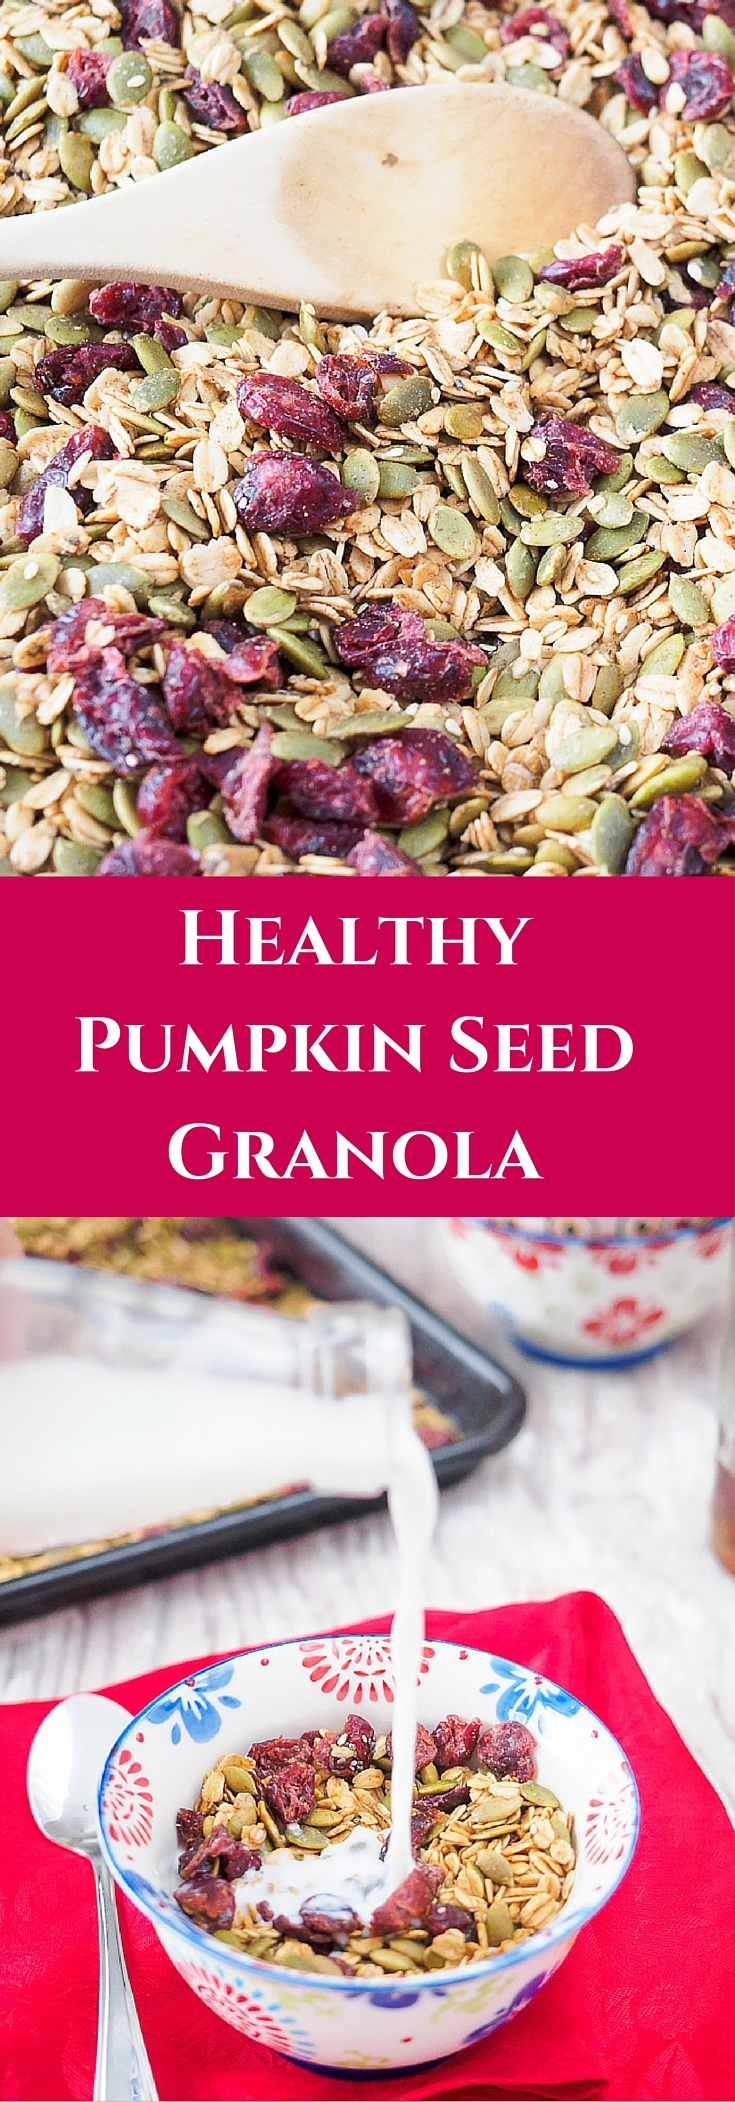 This Healthy Pumpkin Seed Granola is full of good for you ingredients. It comes together quickly and can be eaten for breakfast or as a healthy snack.